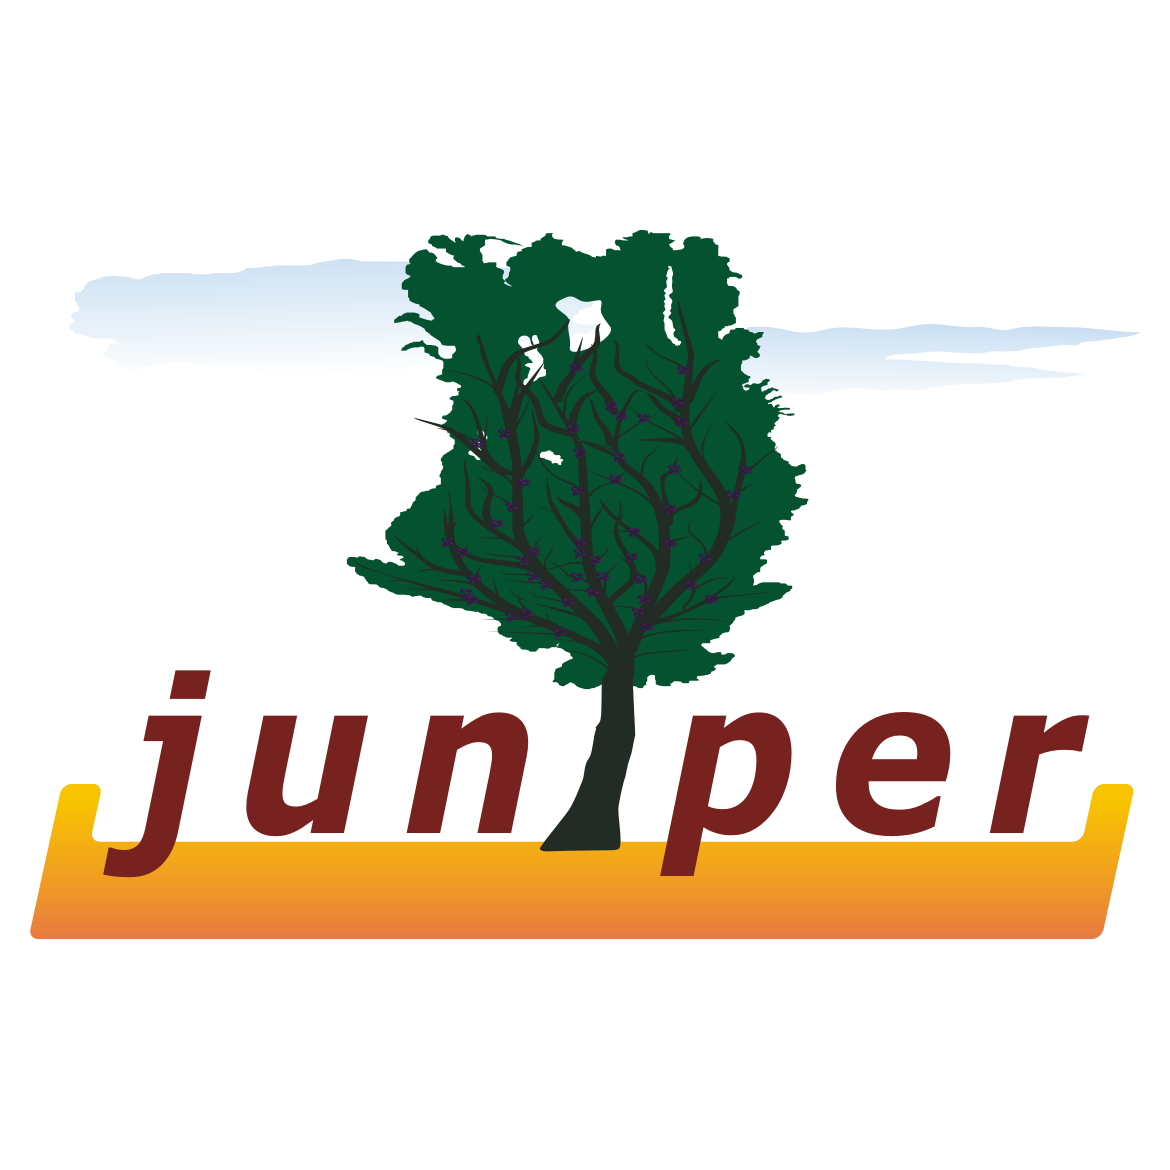 Logo Design by ElisG - Entry No. 16 in the Logo Design Contest Juniper.